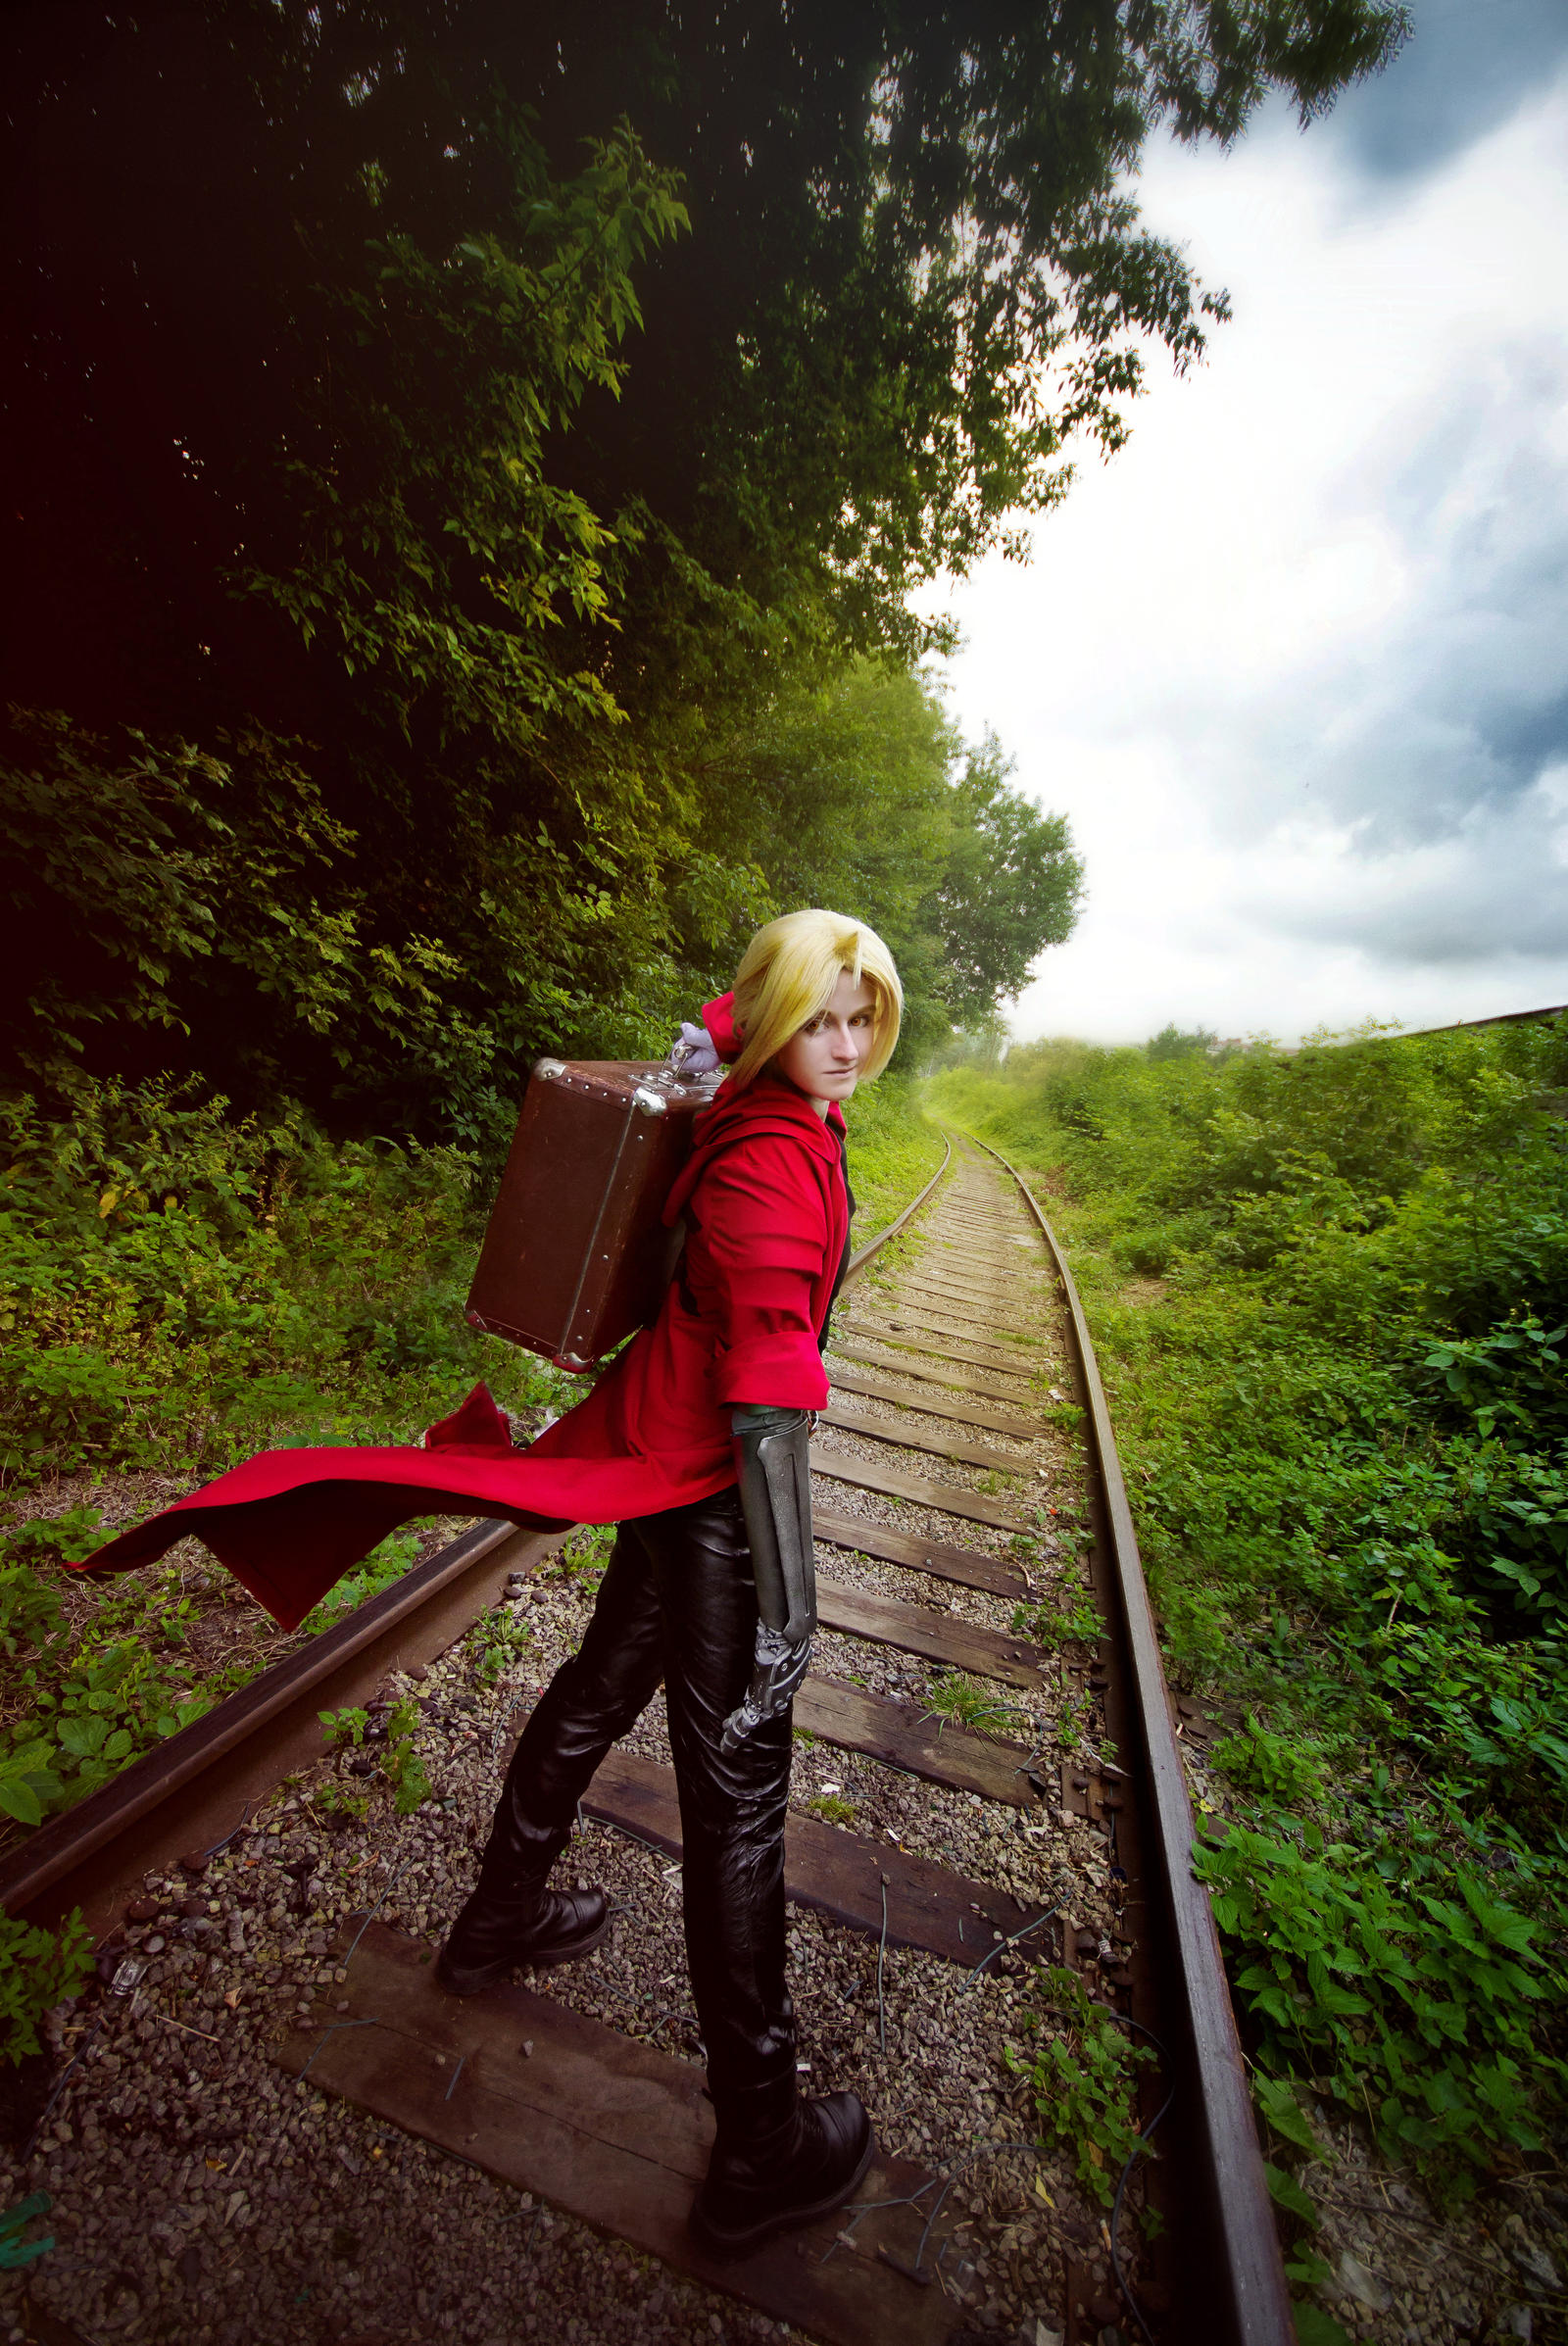 Edward Elric by Baxerenok